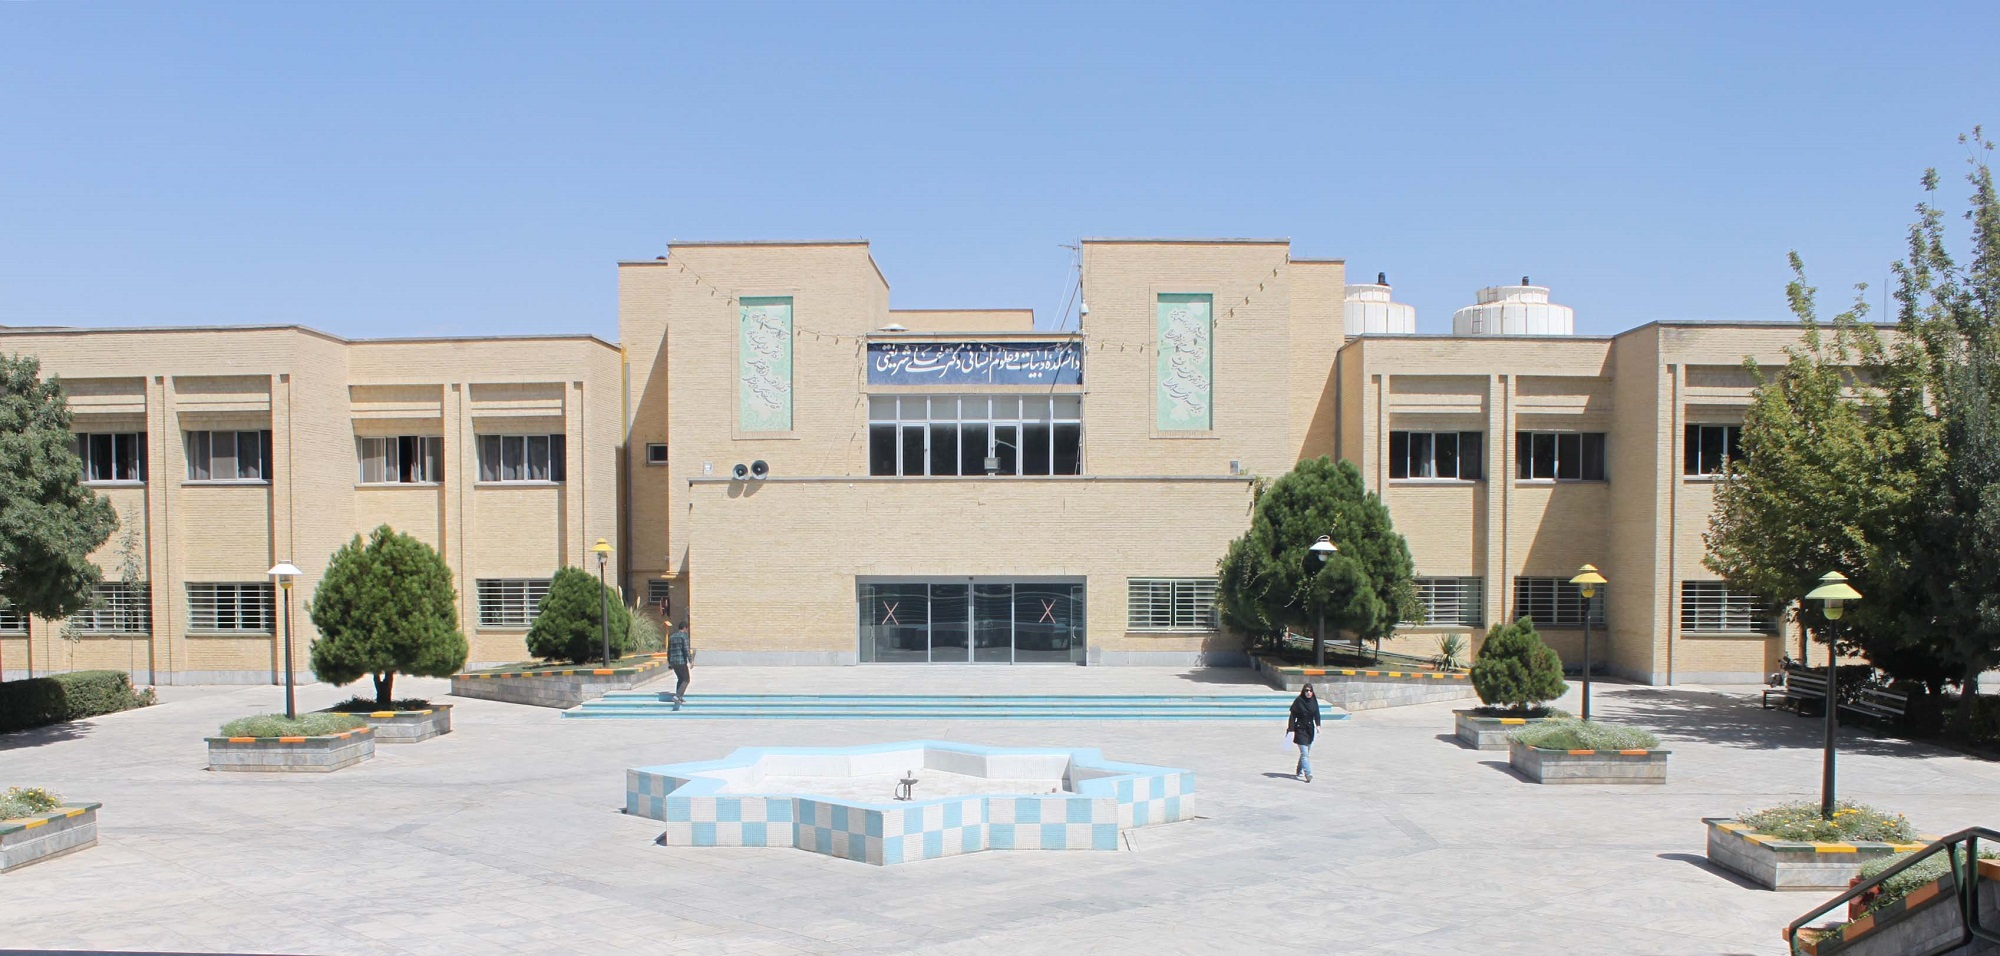 Dr._Ali_Shariati_Faculty_of_Letters_and_Humanities